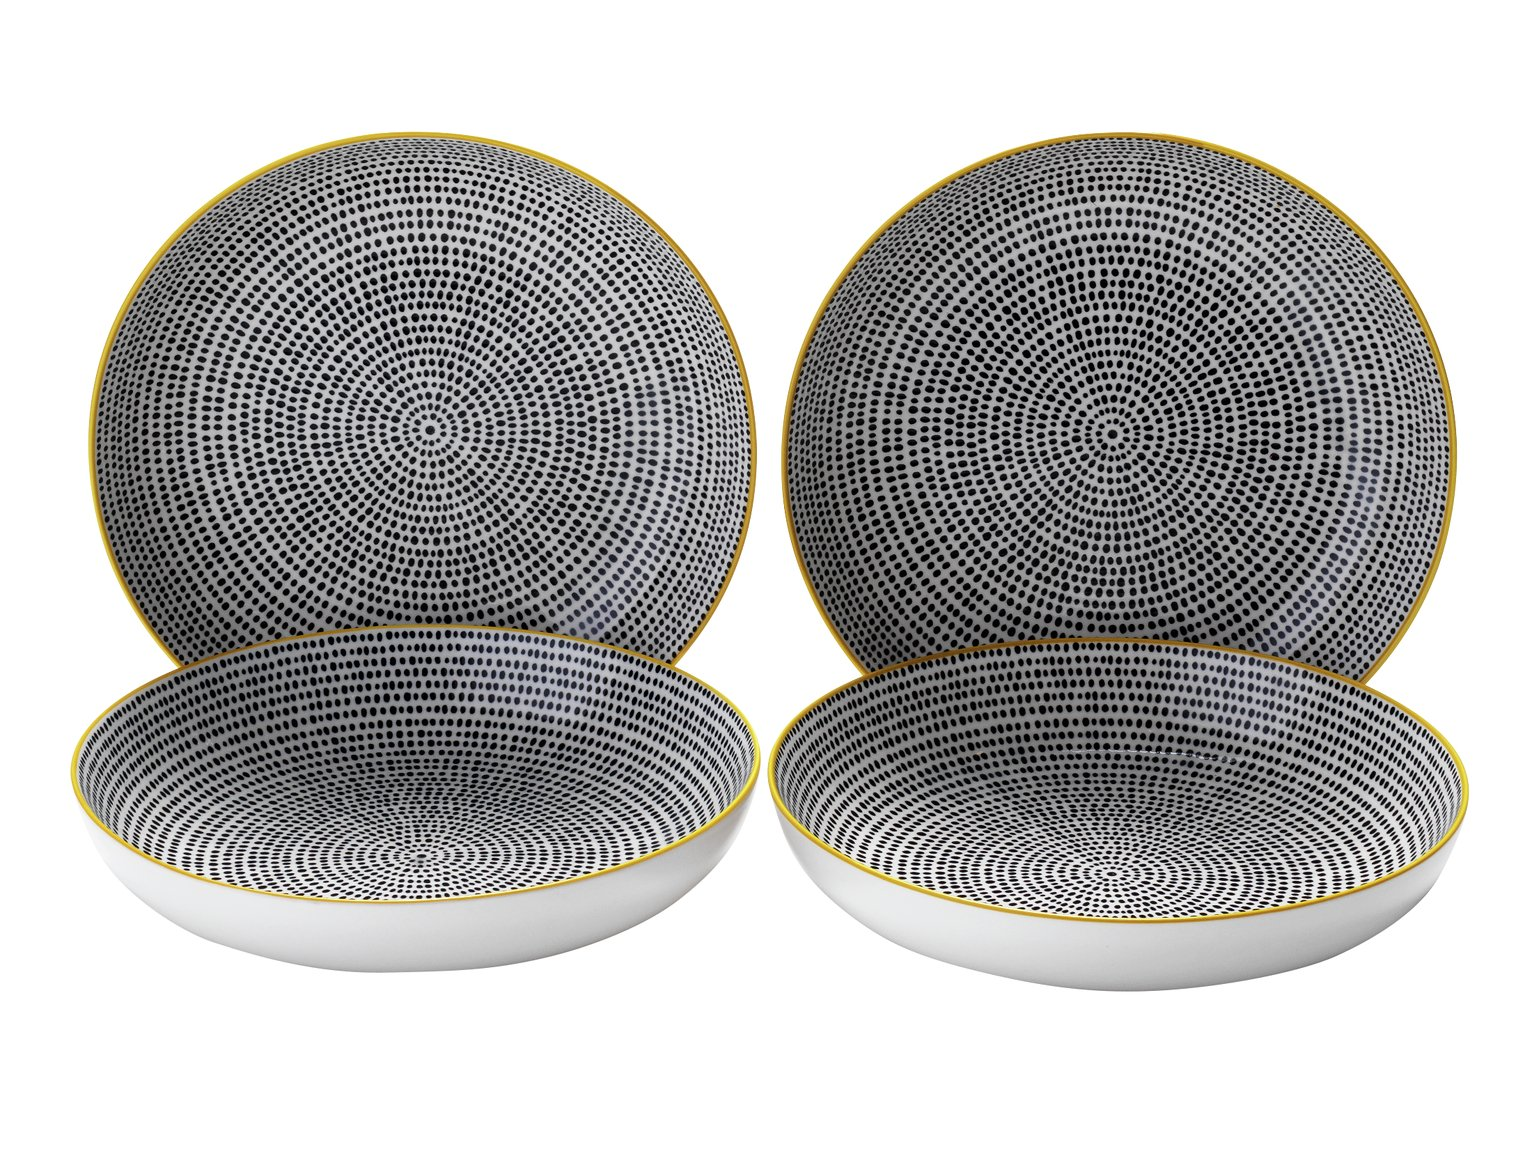 review of sainsbury 39 s home helsinki set of 4 pasta bowls. Black Bedroom Furniture Sets. Home Design Ideas